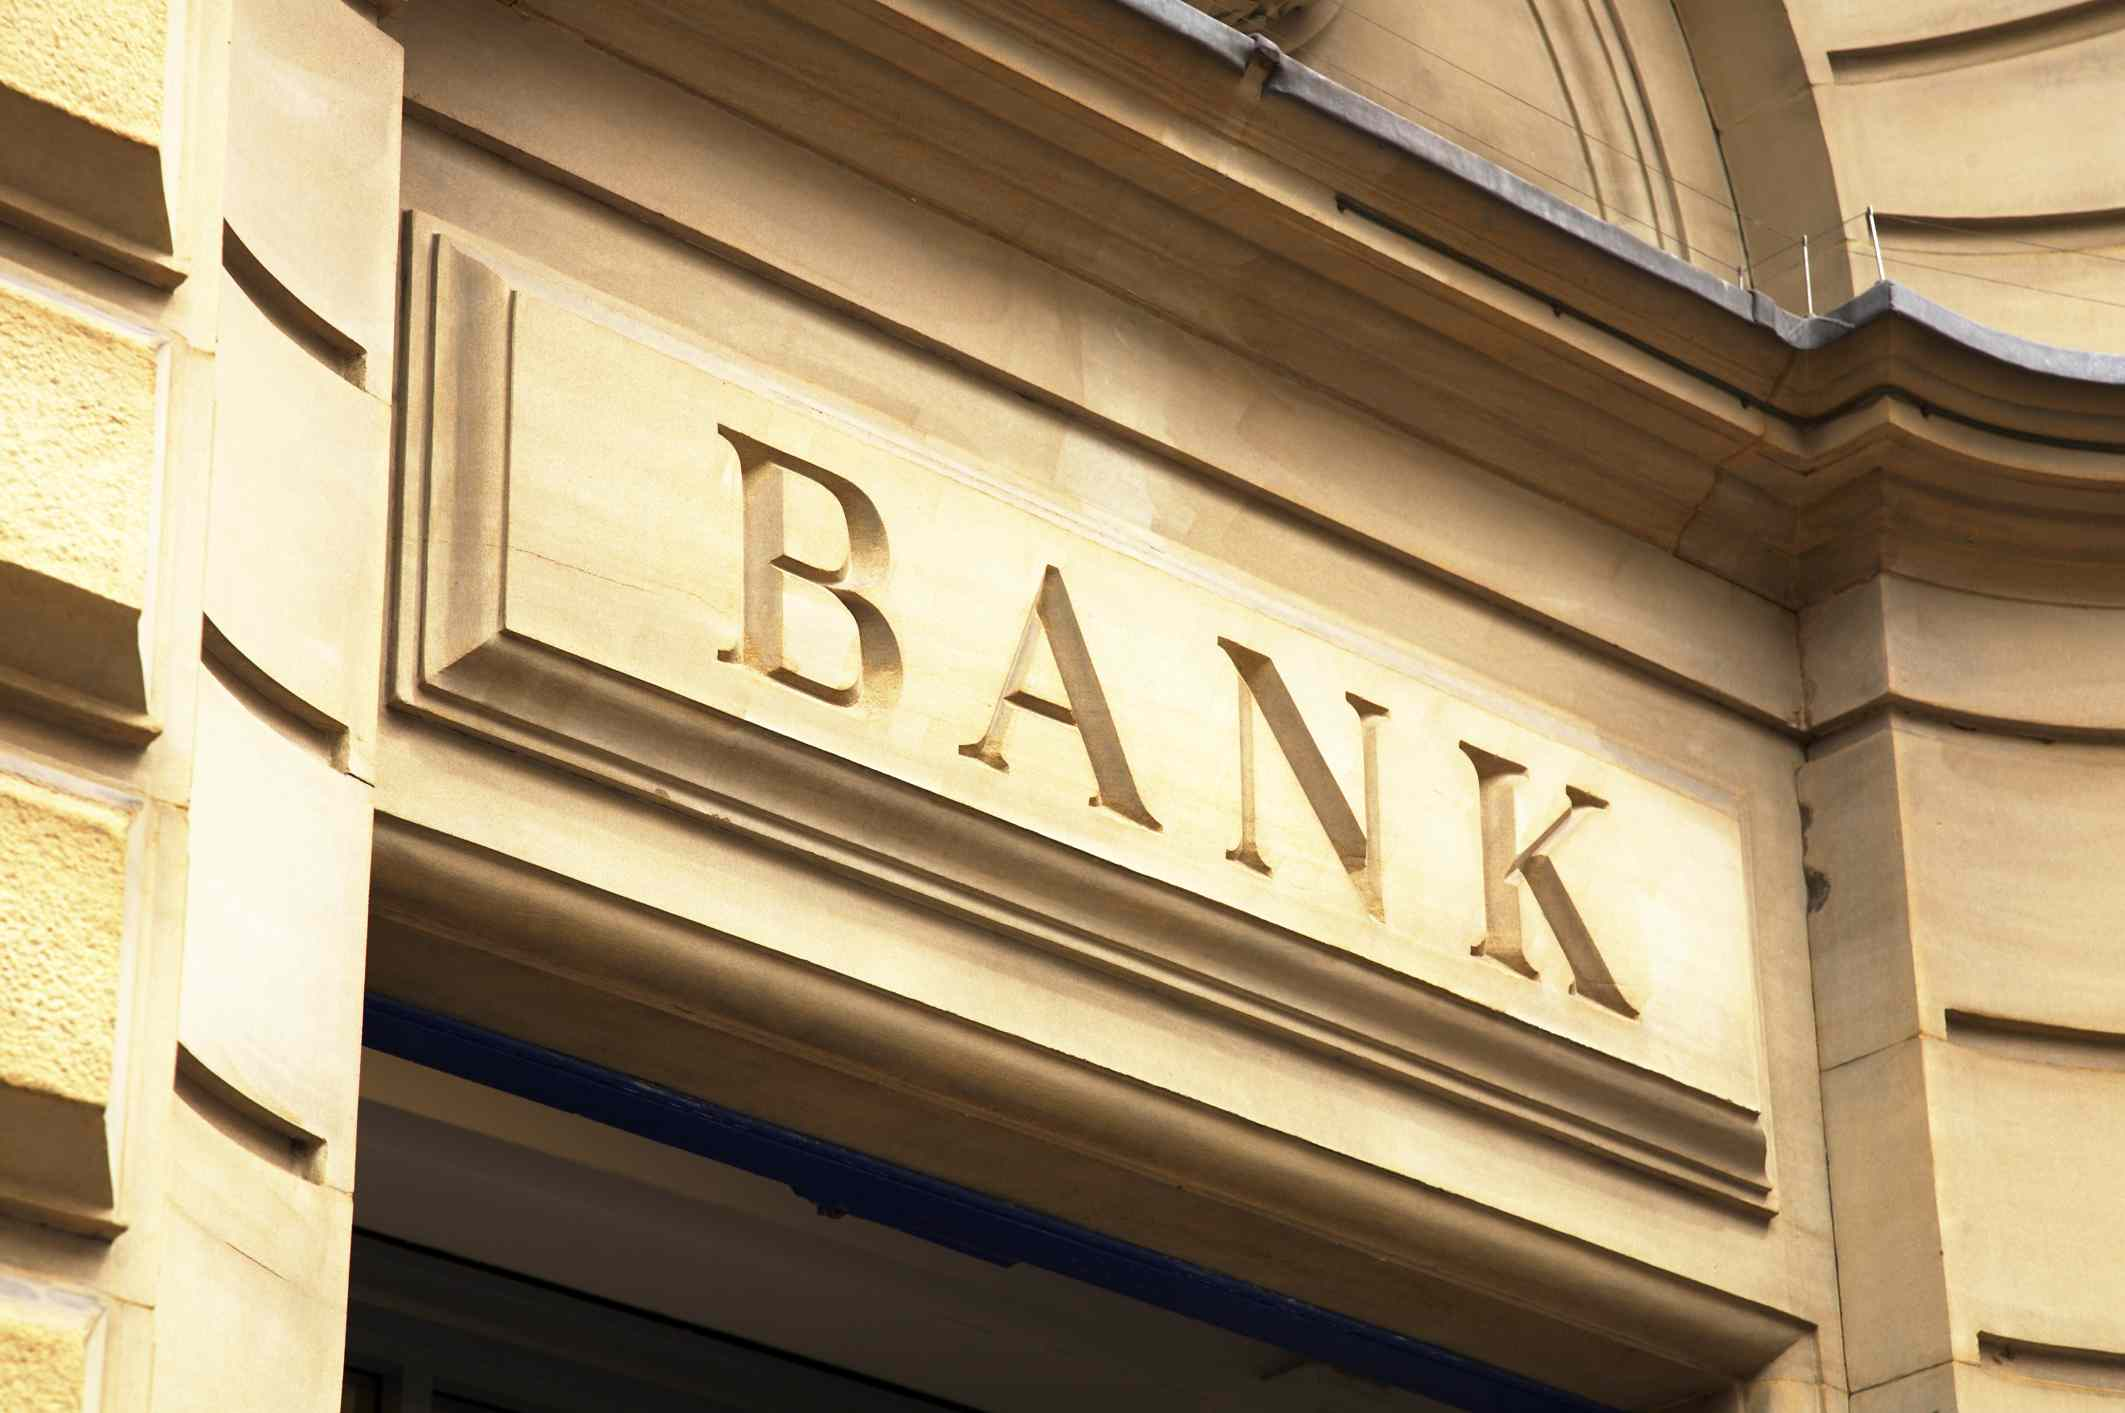 Savings & Loan Companies vs. Commercial Banks: What's the Difference?